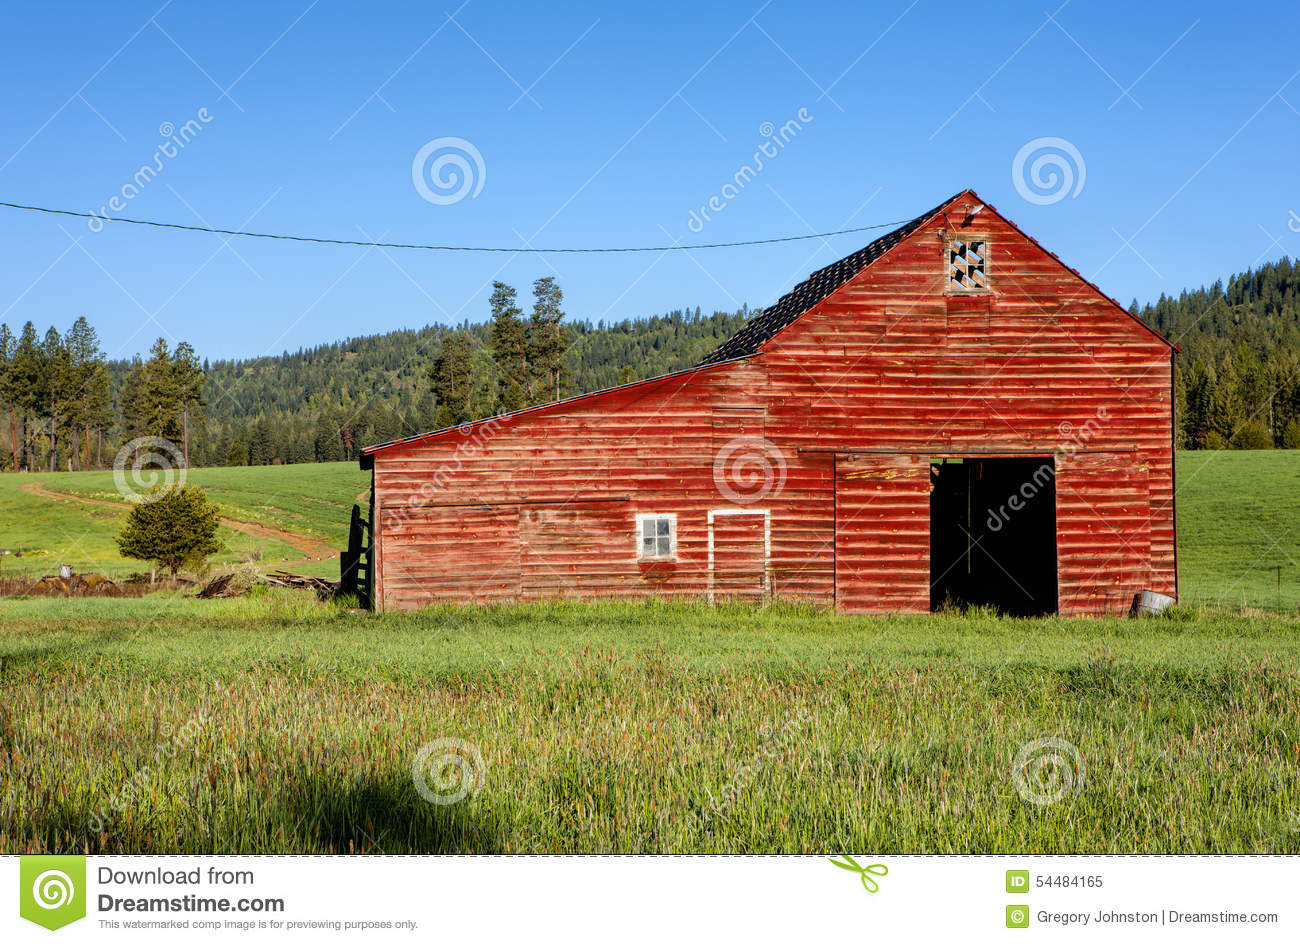 Cow on green pasture with red barn with grain silo royalty free stock - Red Barn Green Grass